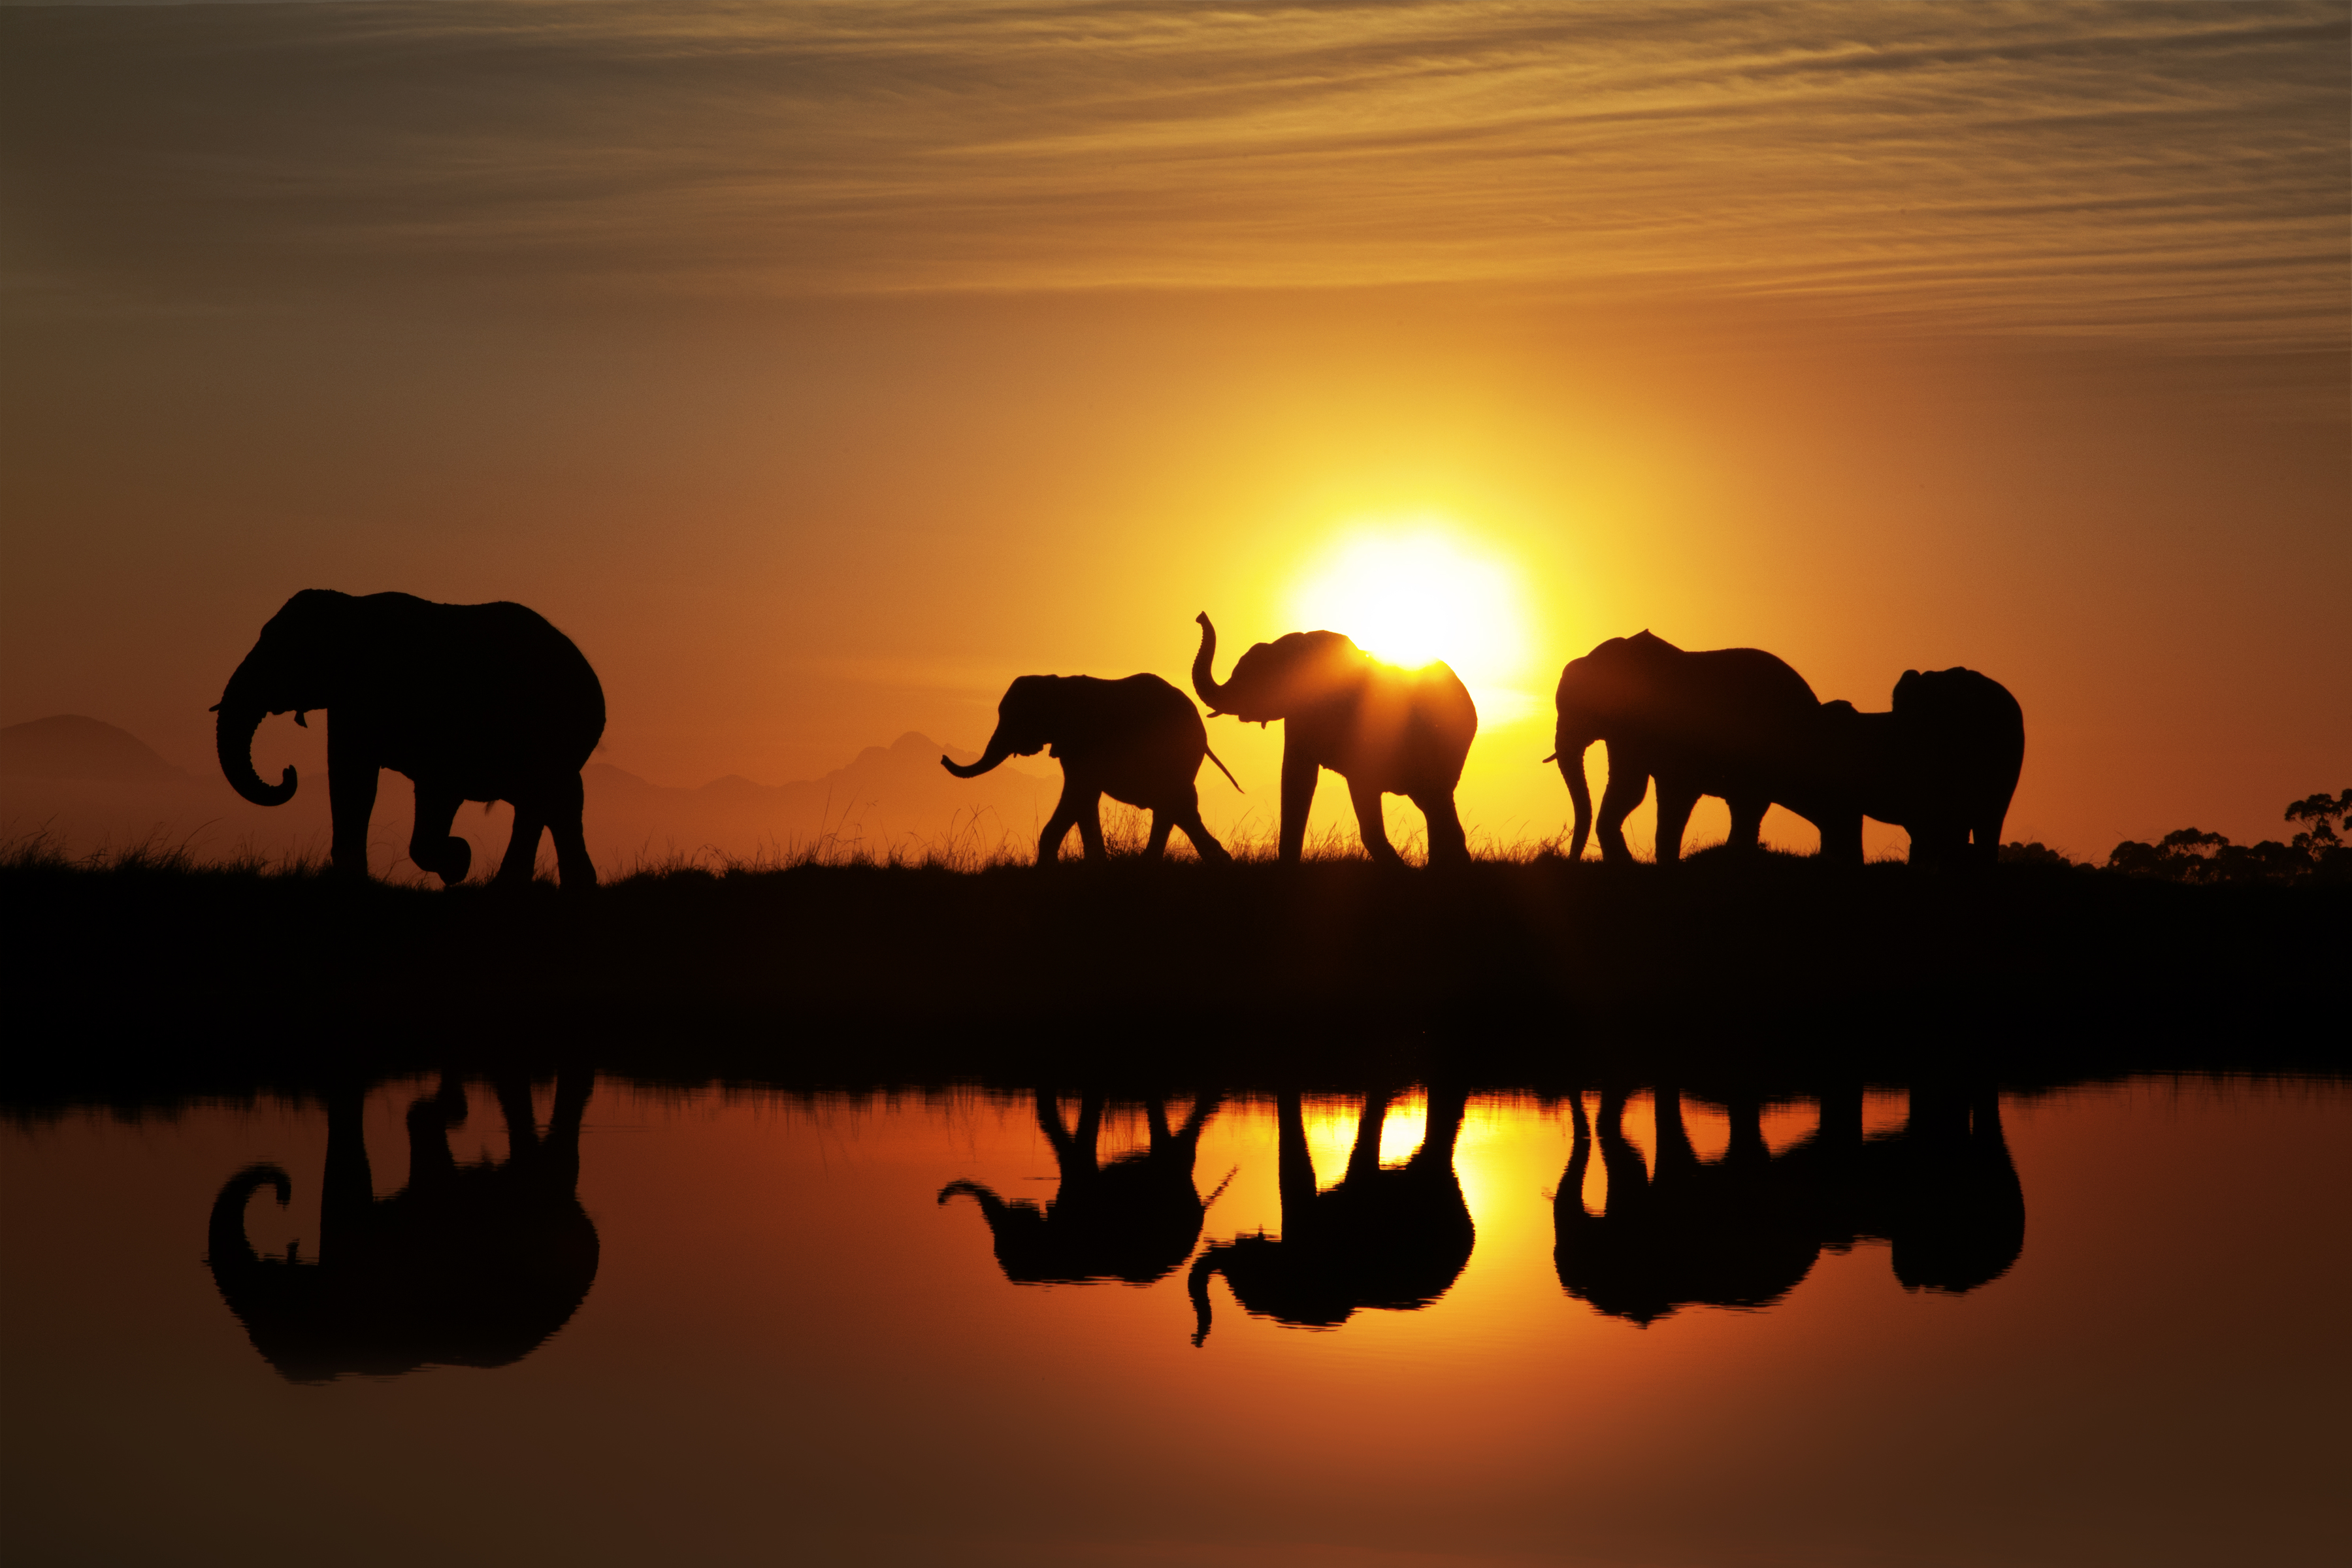 Elephants_at_Sunset